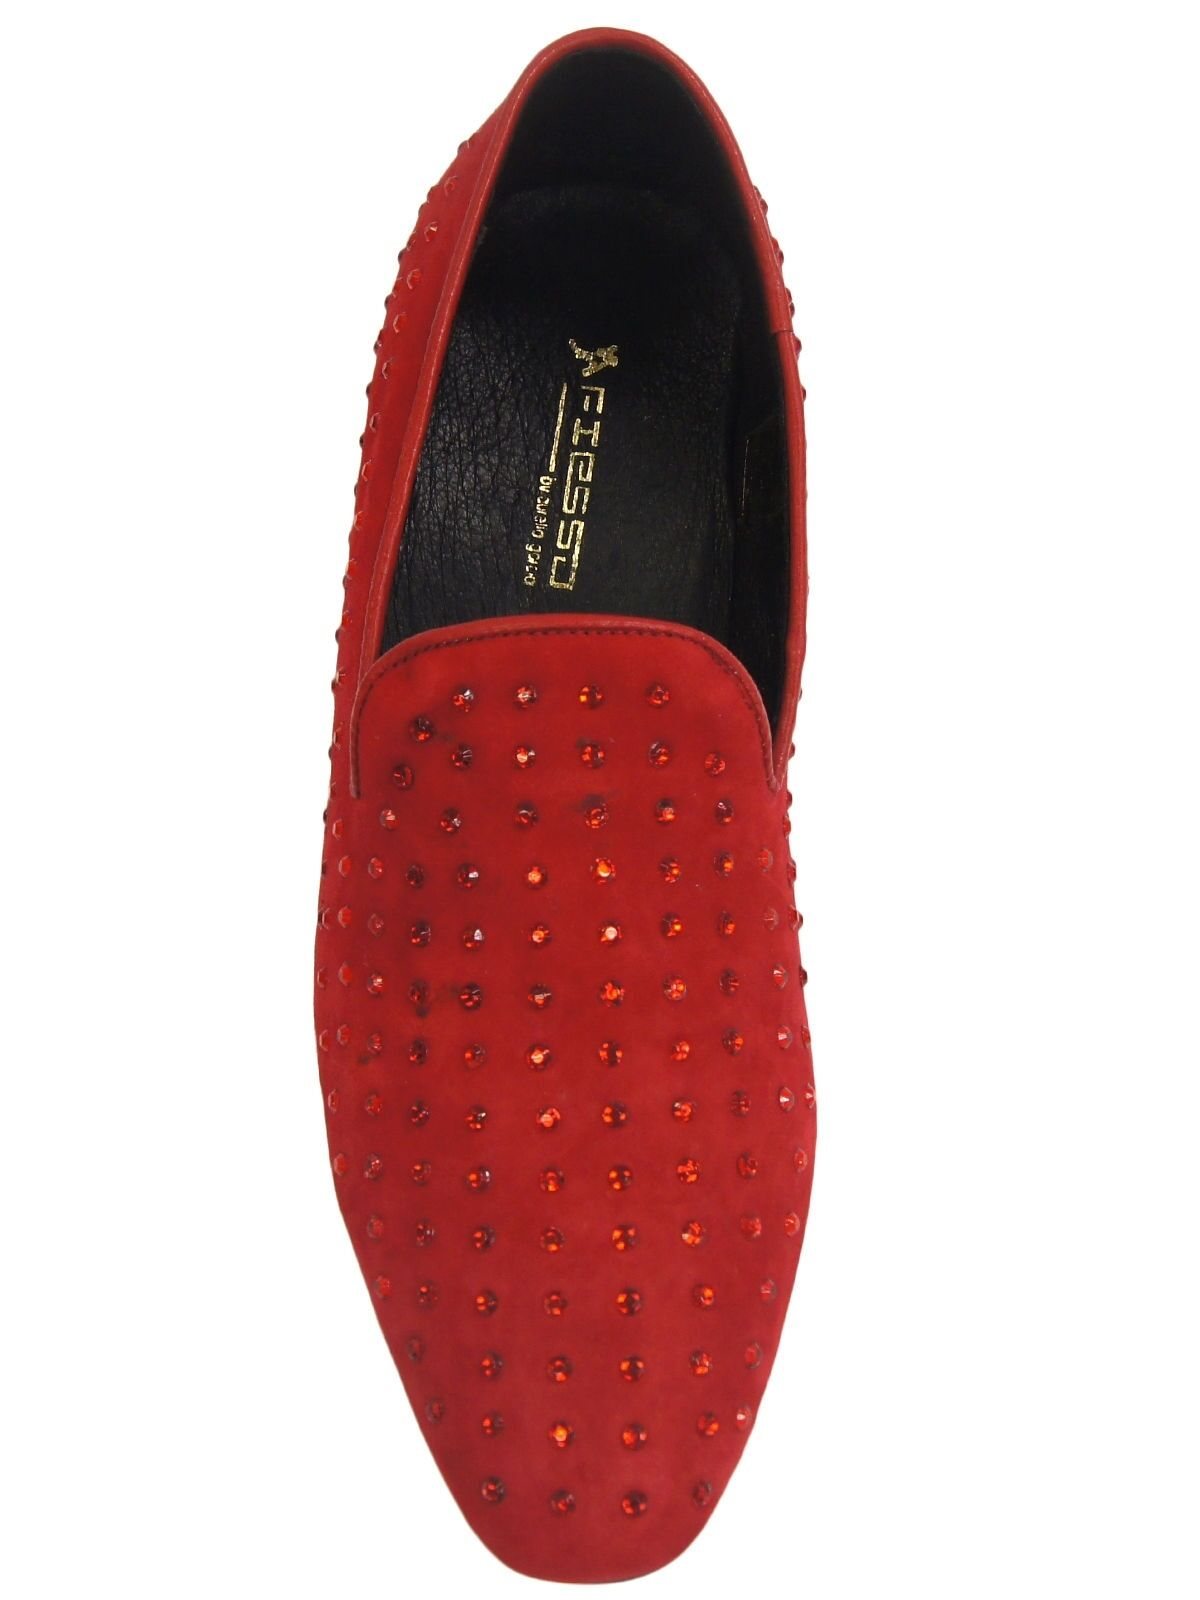 Fiesso Uomo Red Slipper Suede Rhinestone Dress Casual Slipper Red Loafer Party Trending Shoe 1d0835